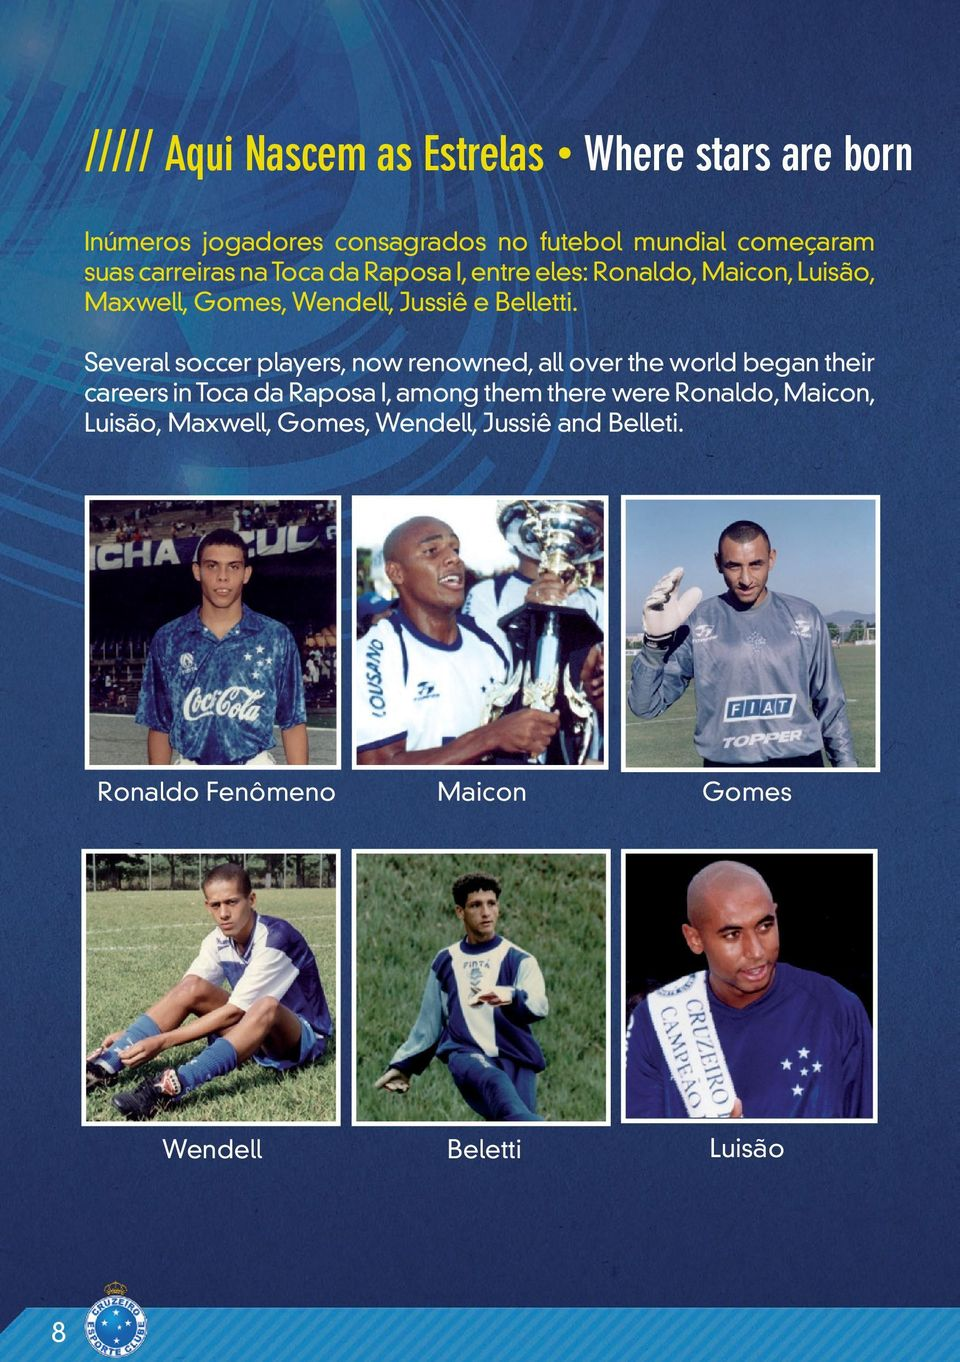 Several soccer players, now renowned, all over the world began their careers in Toca da Raposa I, among them there